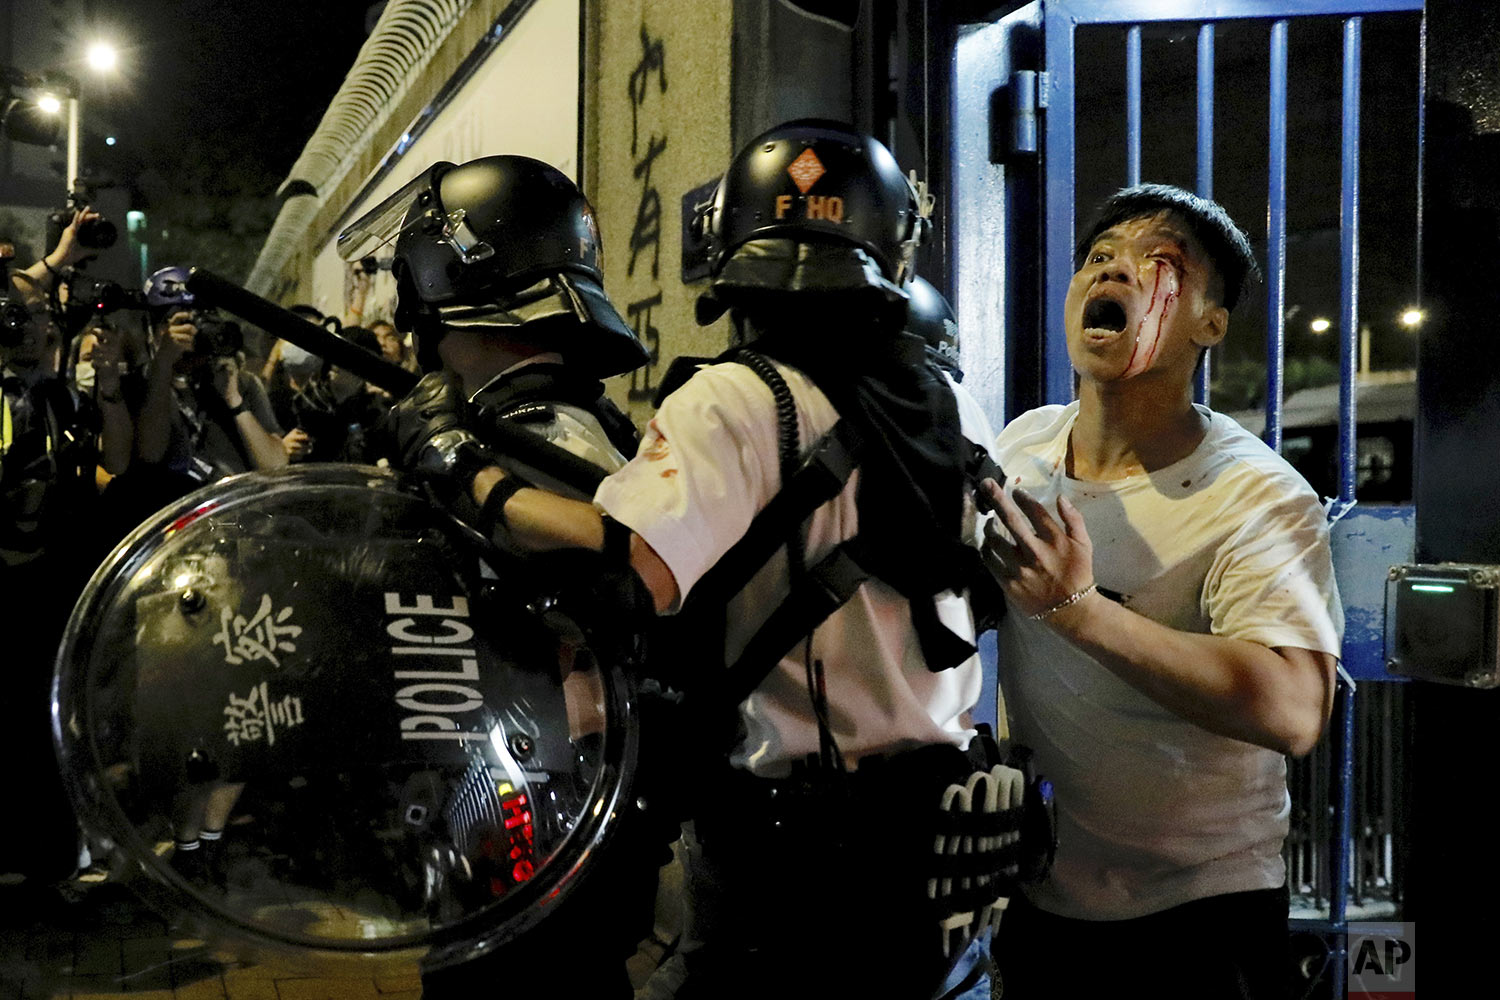 A bleeding man is taken away by policemen after attacked by protesters outside Kwai Chung police station in Hong Kong, Wednesday, July 31, 2019.  (AP Photo/Vincent Yu)